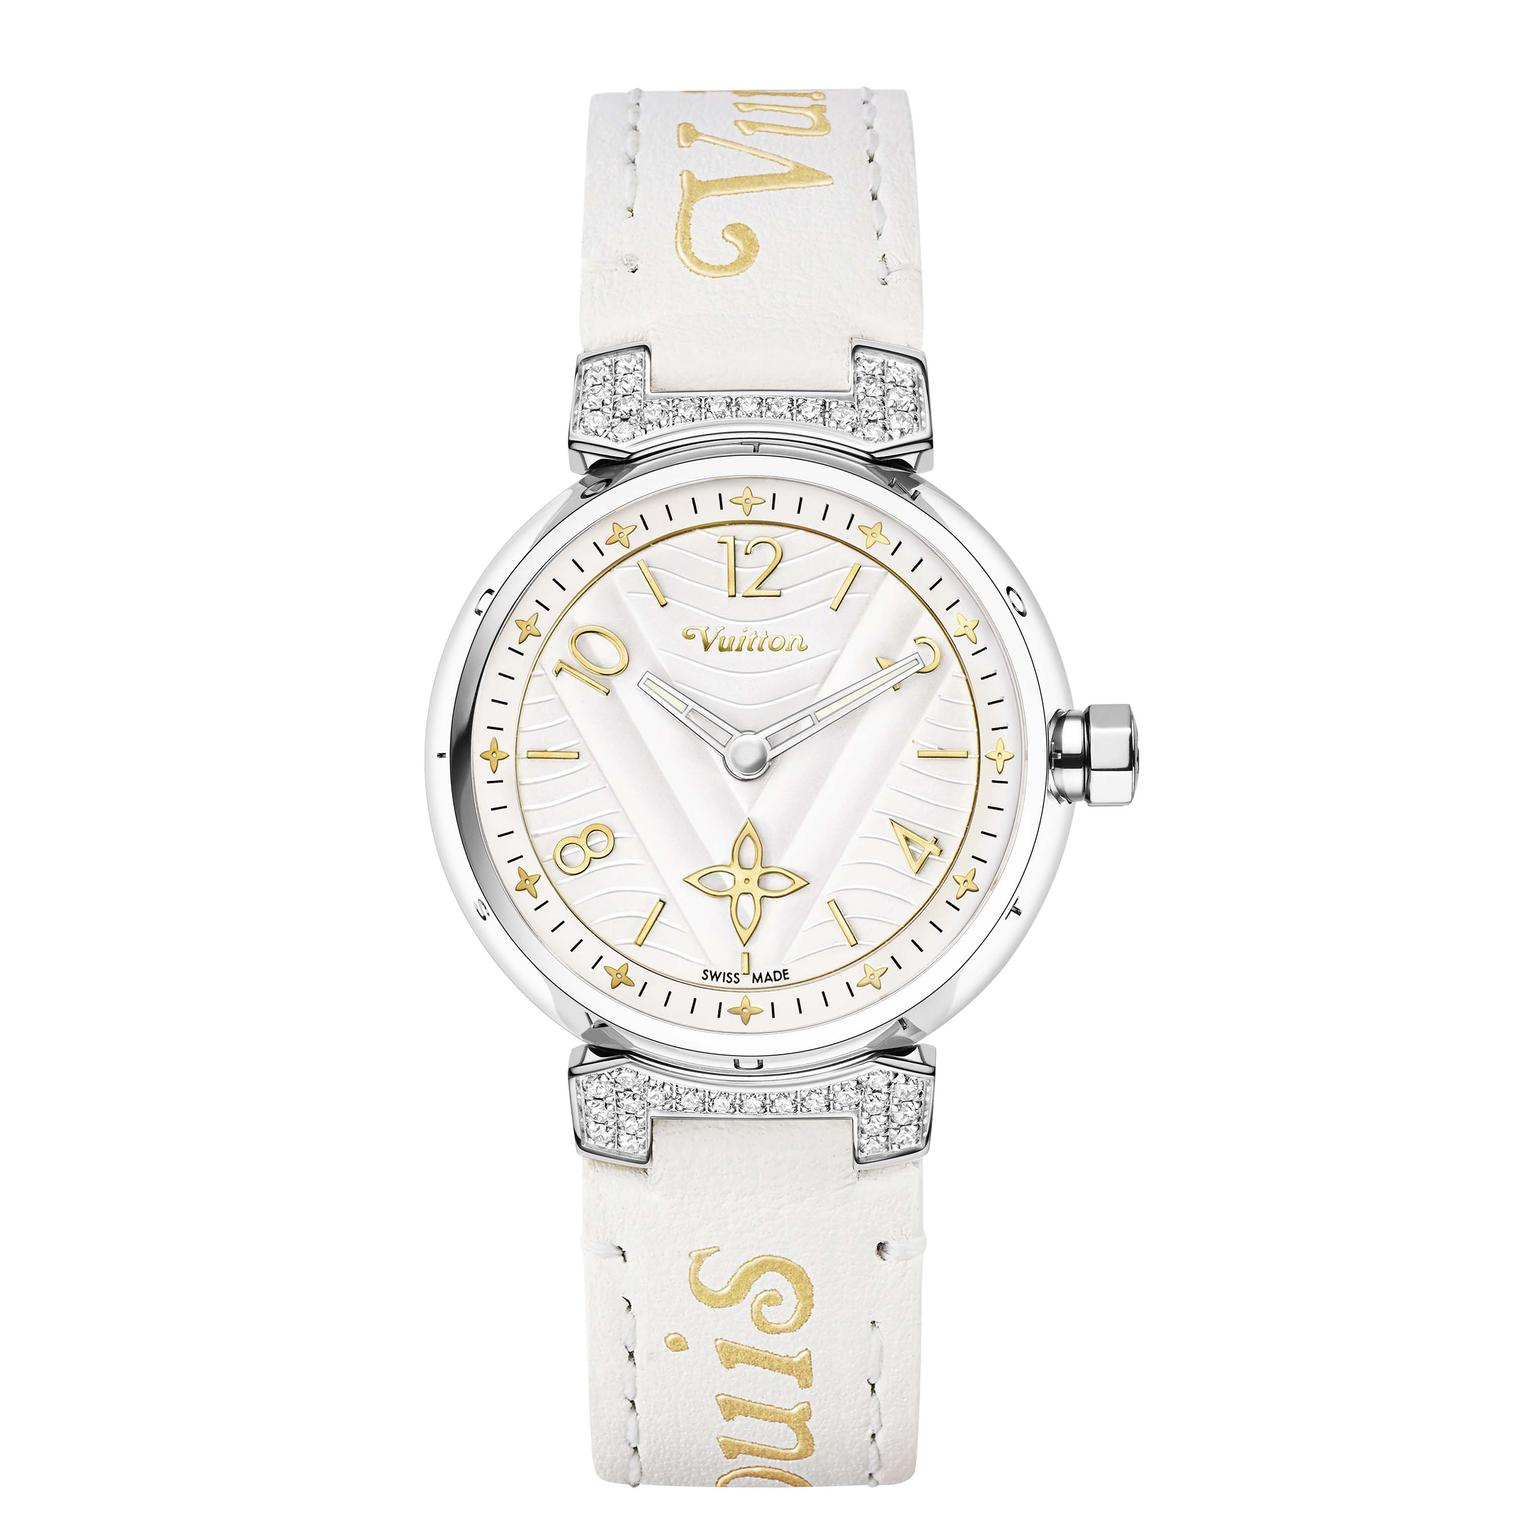 Louis Vuitton Tambour New Wave 34 mm watch with diamonds